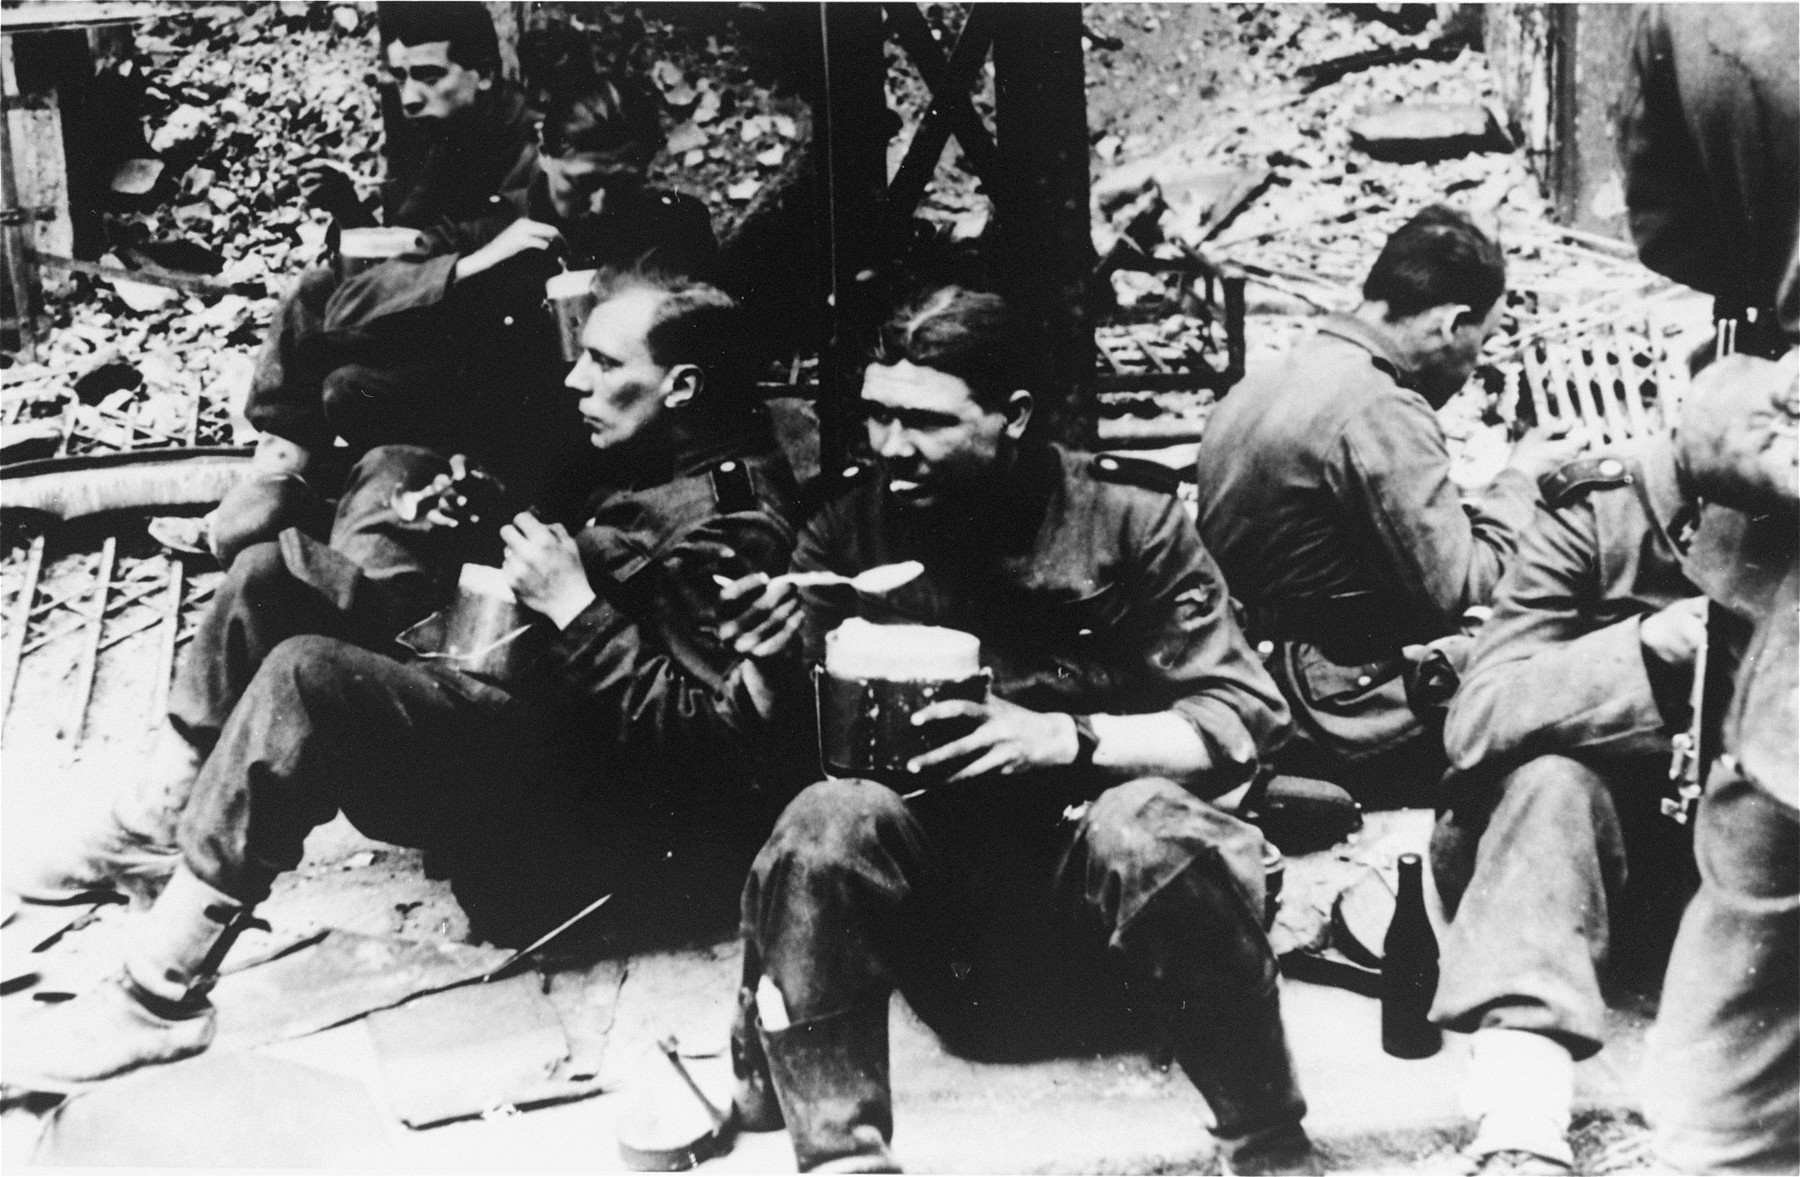 SS soldiers pause to eat during the suppression of the Warsaw ghetto uprising.